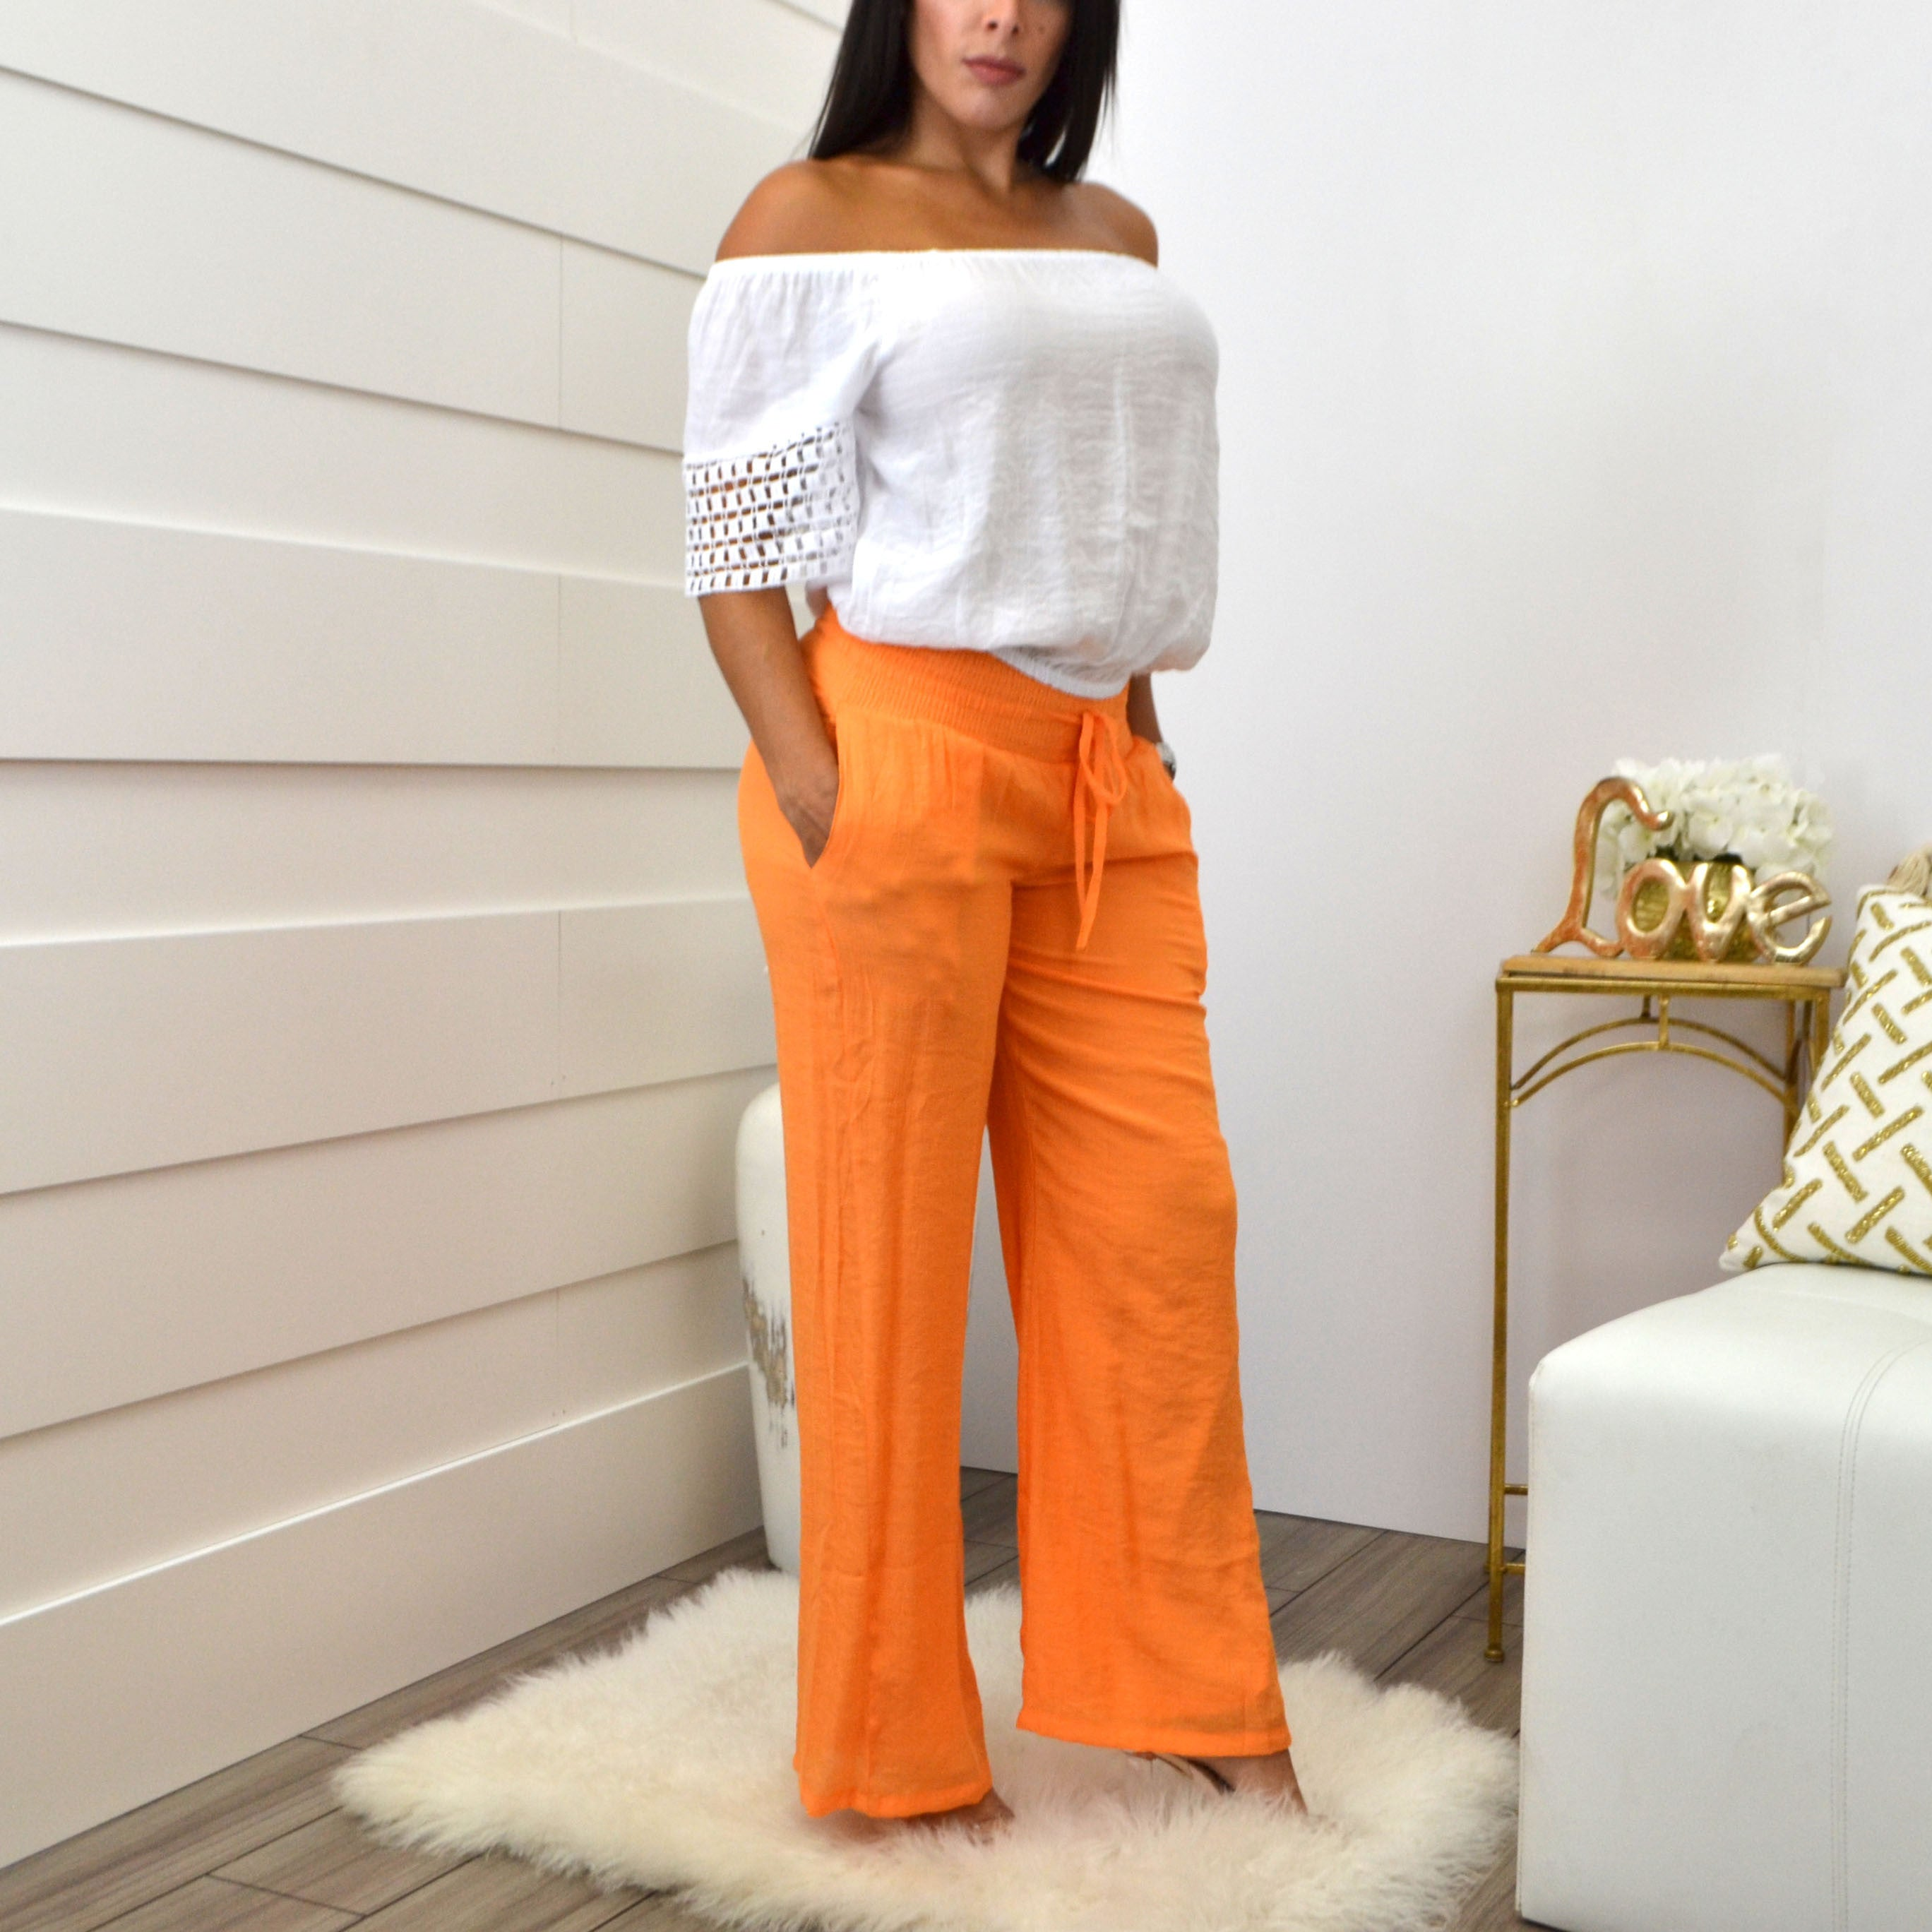 LORENA ADAMS BLOUSE WHITE - Bacana Clothing + Shoes